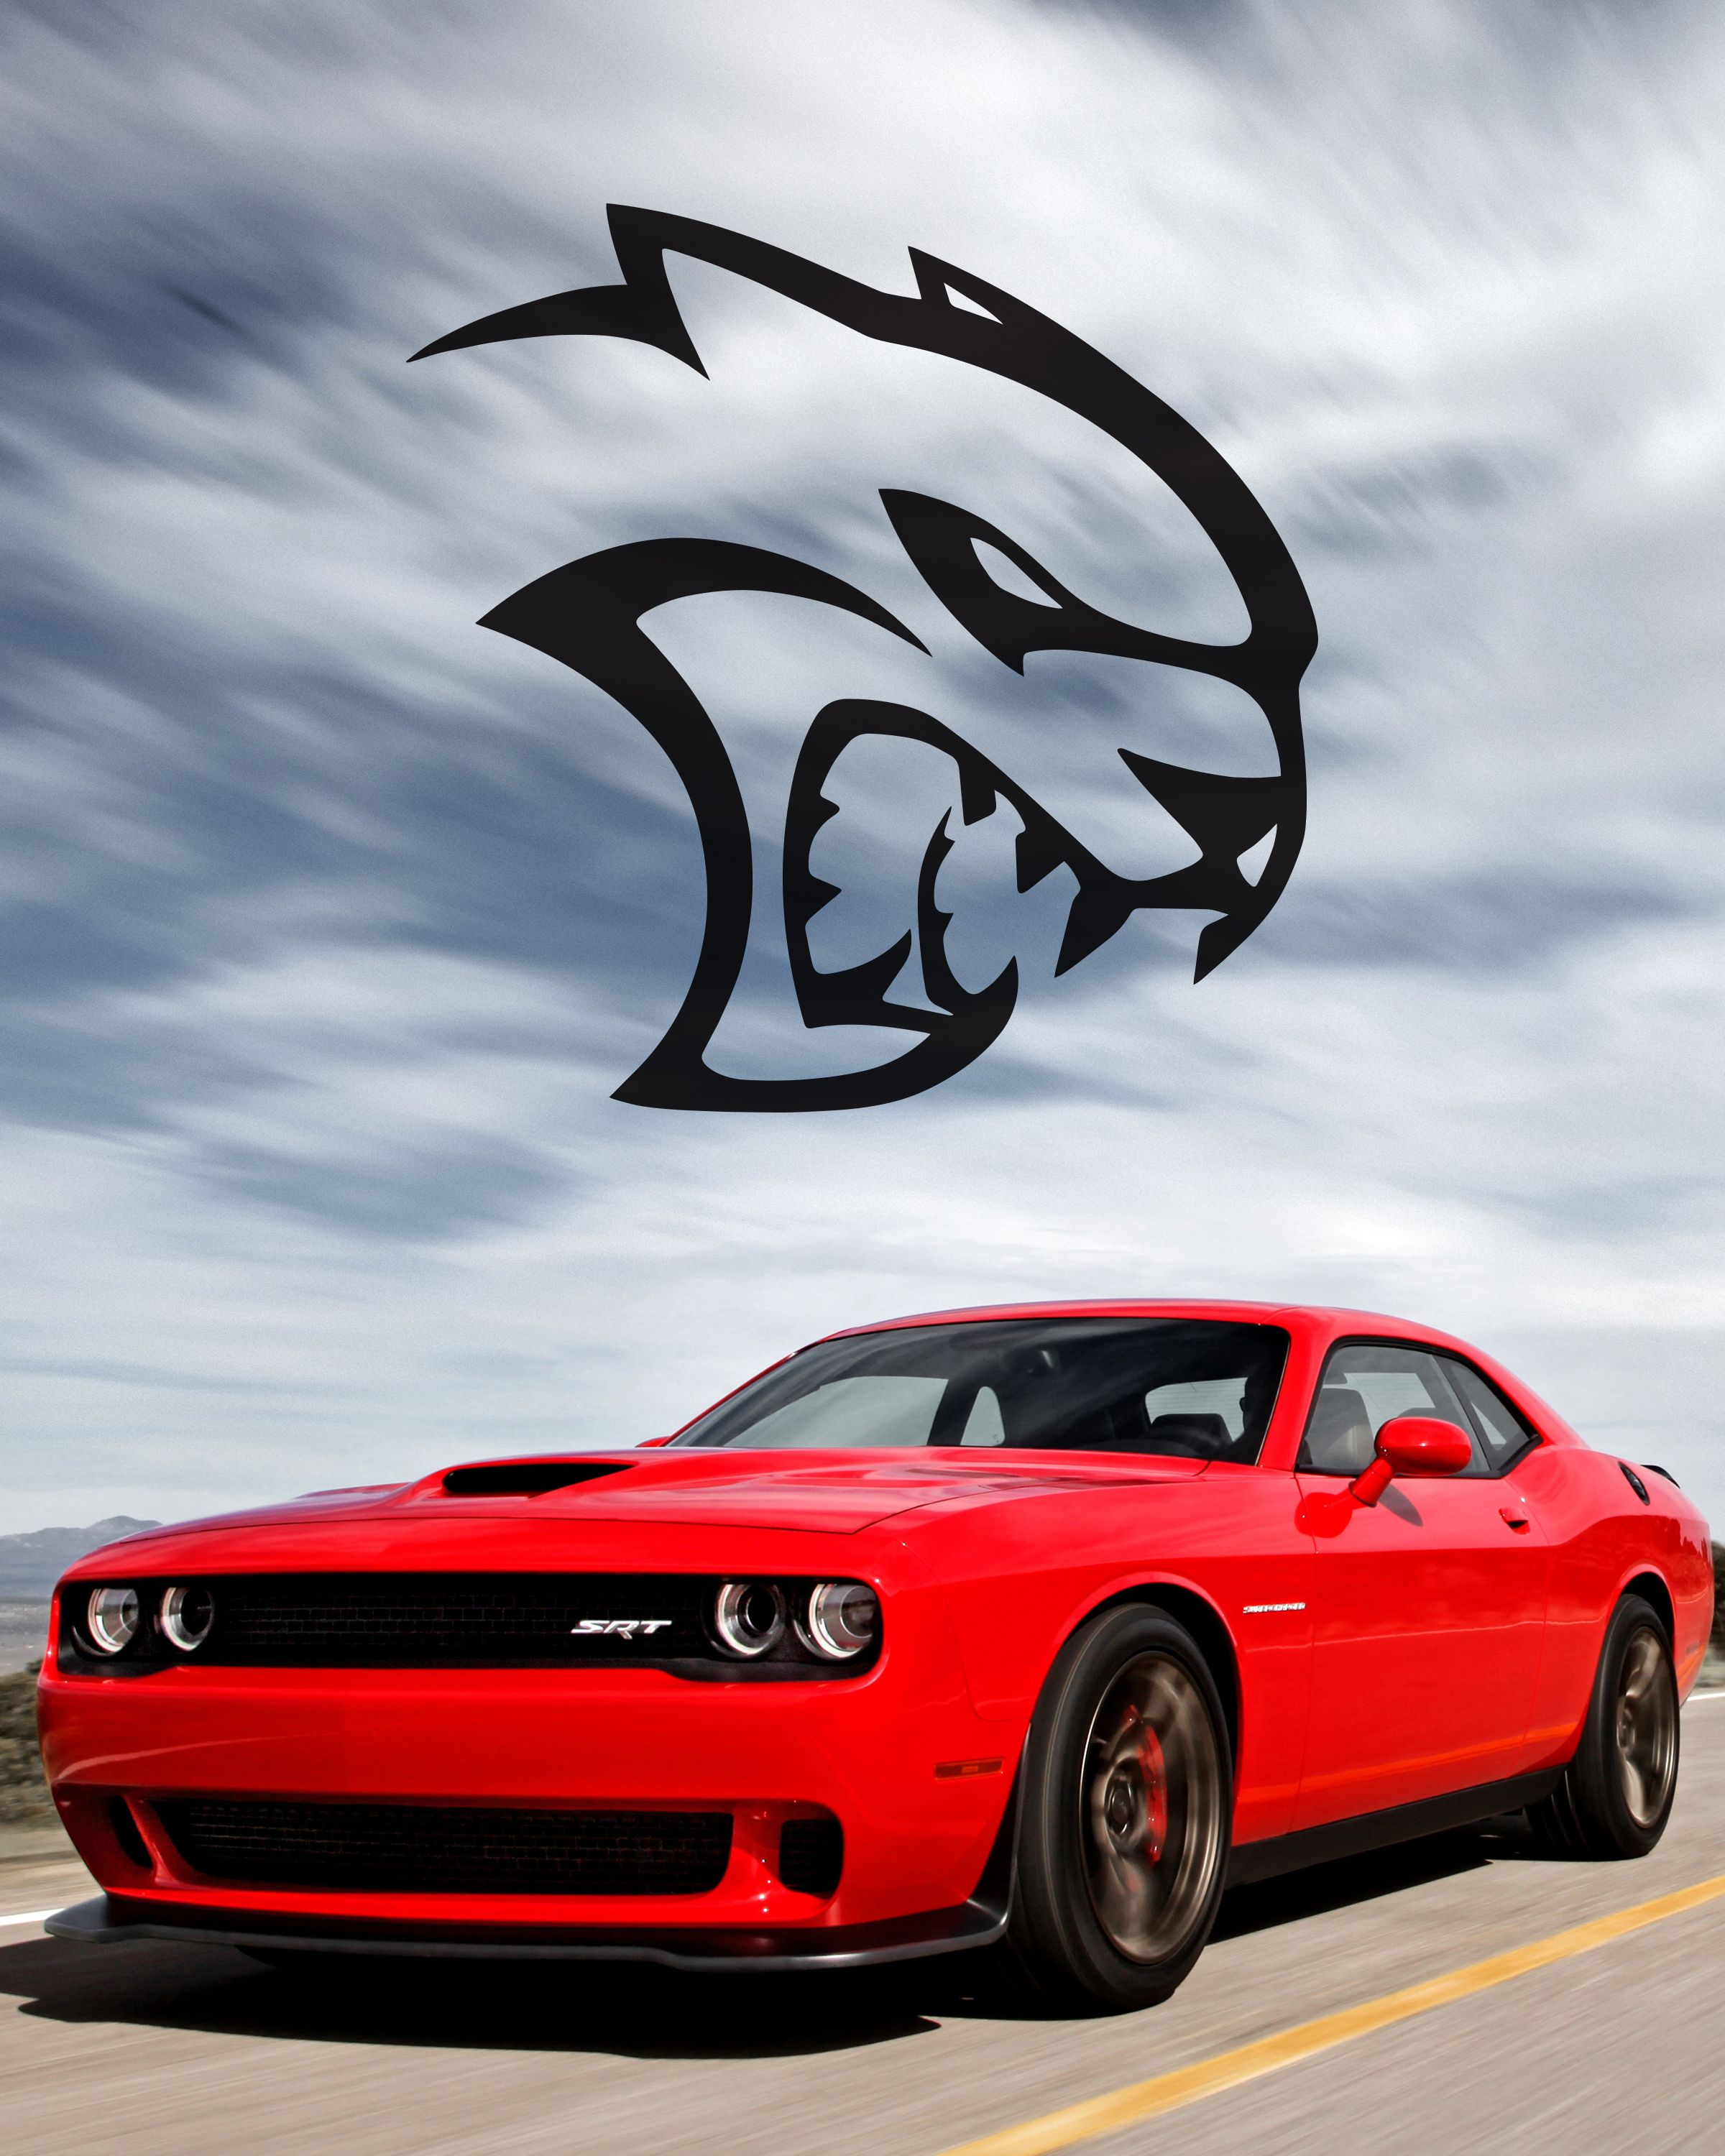 Lake Elsinore Dodge >> Hellcat engine ringtone and wallpaper | Dodge challenger srt hellcat, Challenger srt hellcat ...